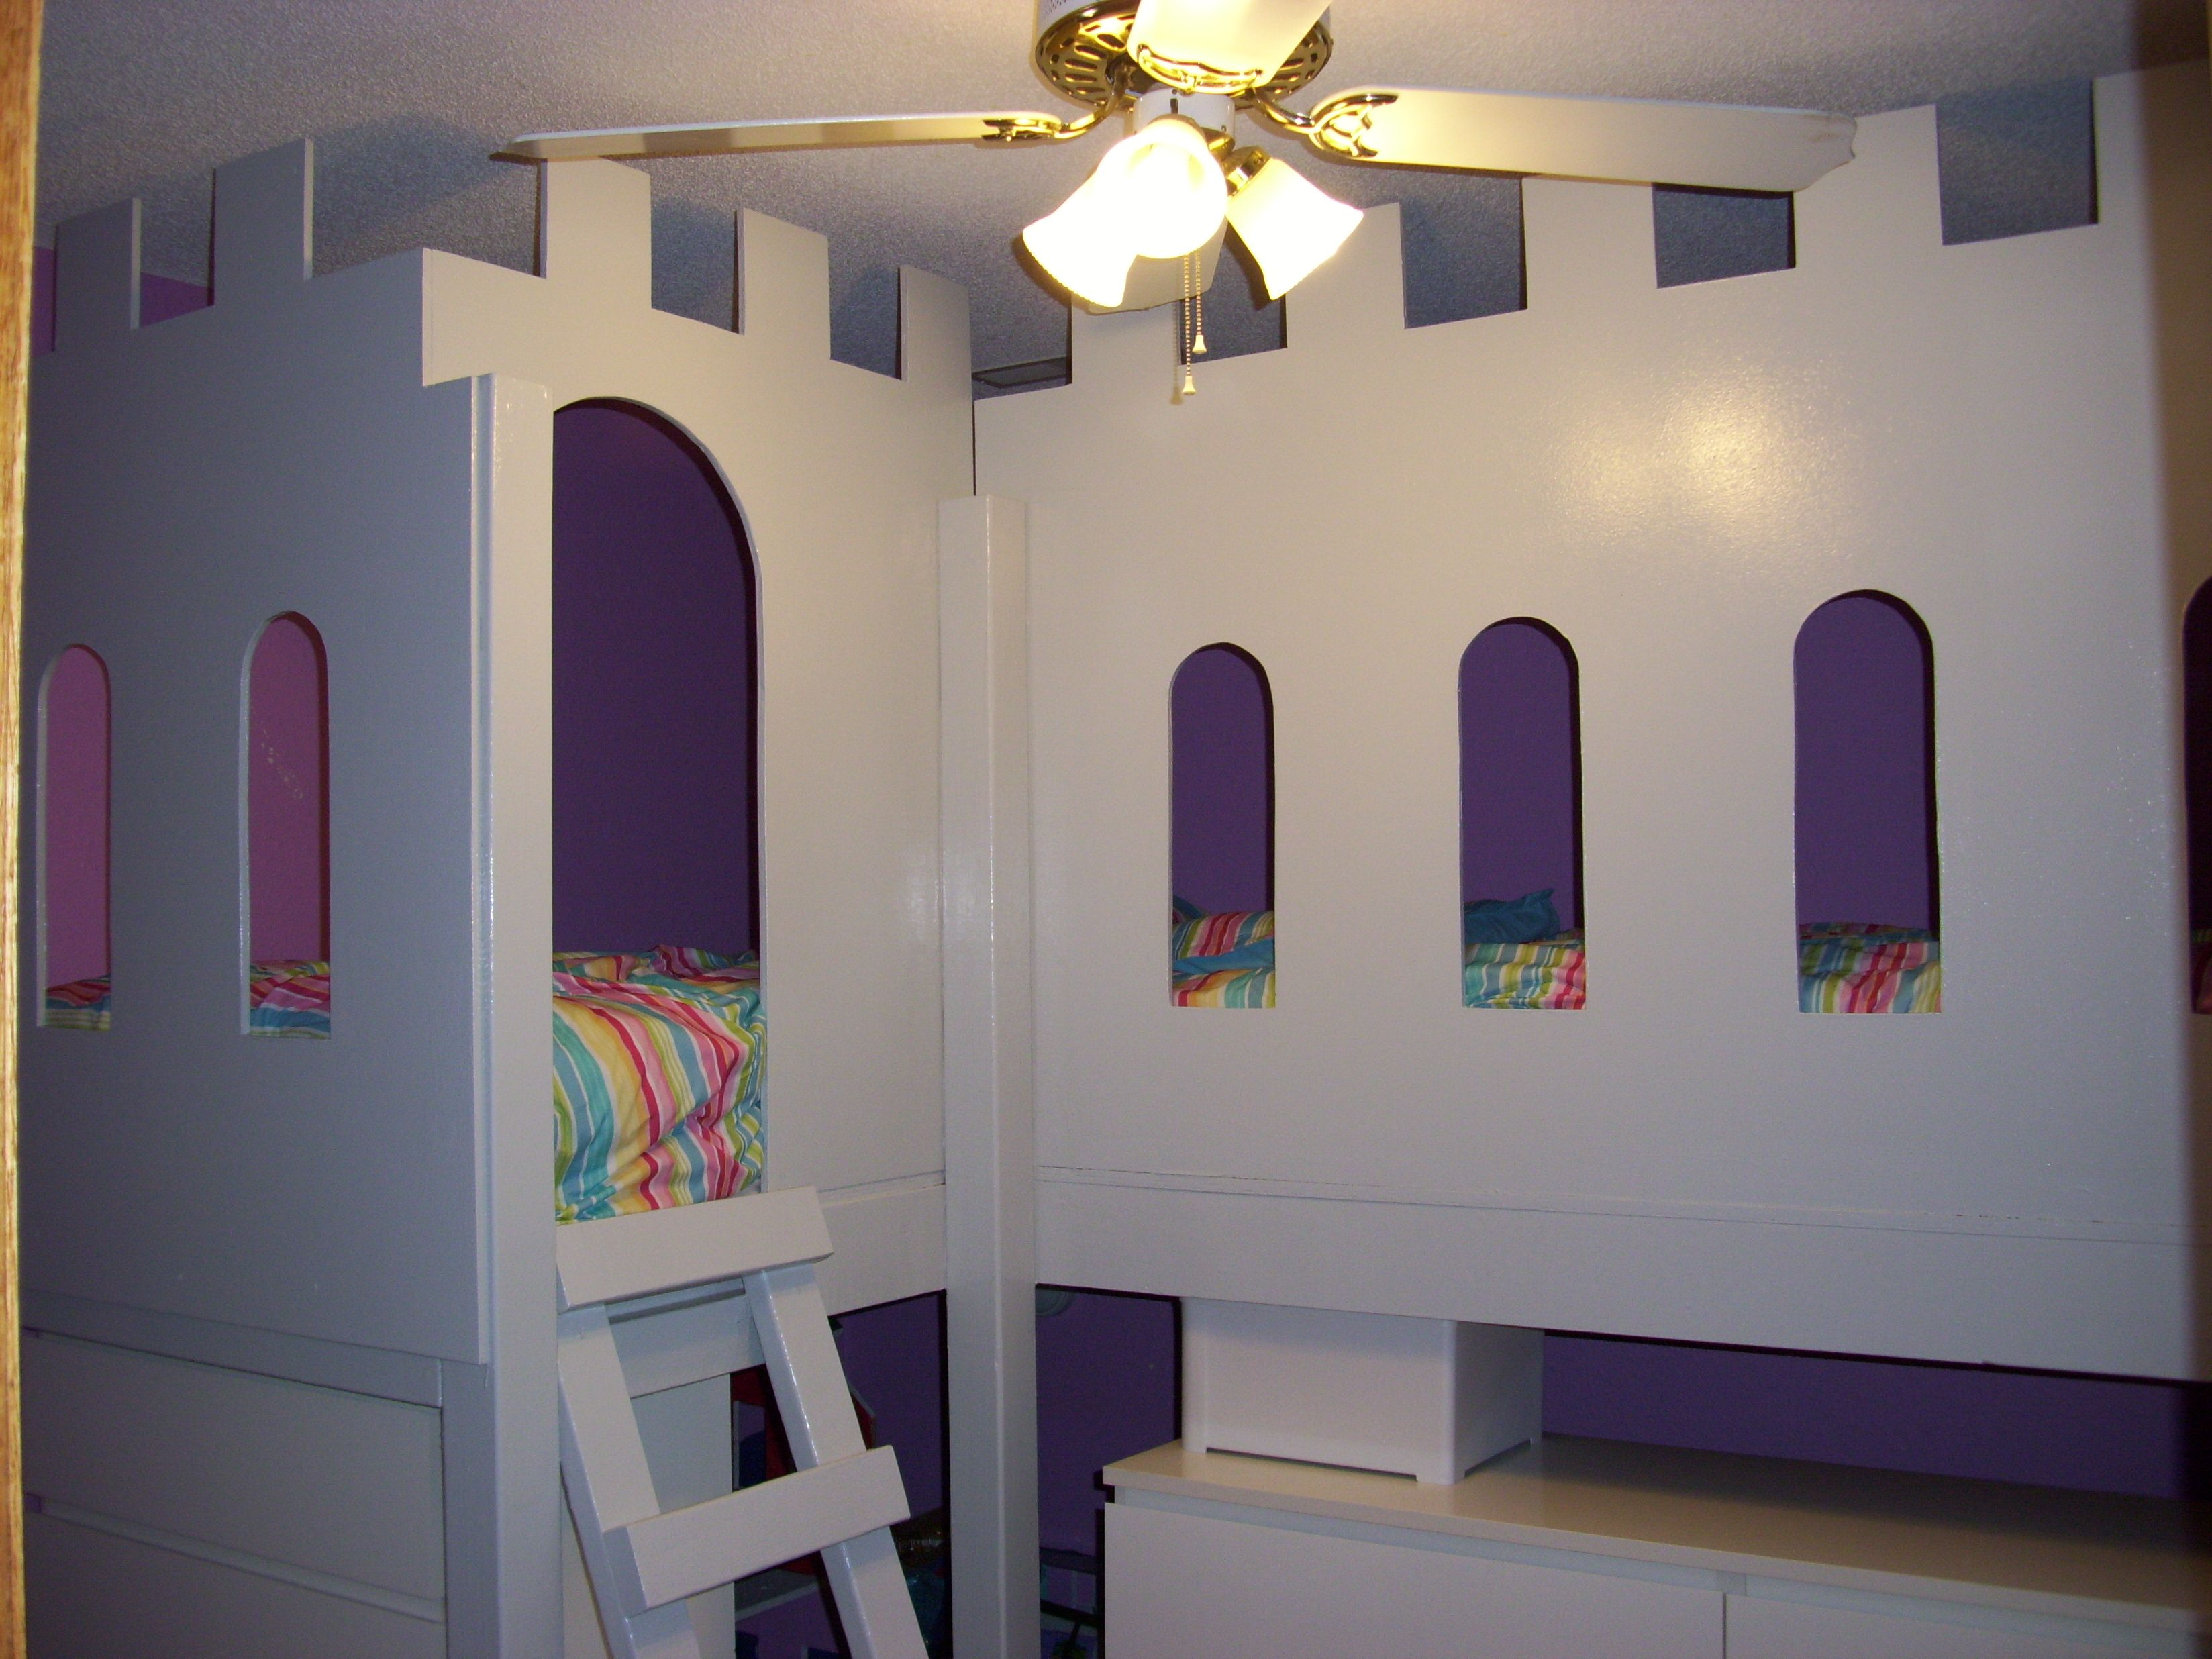 The castle bed my first build it 39 s a low loft bunk bed for How to build a castle bed